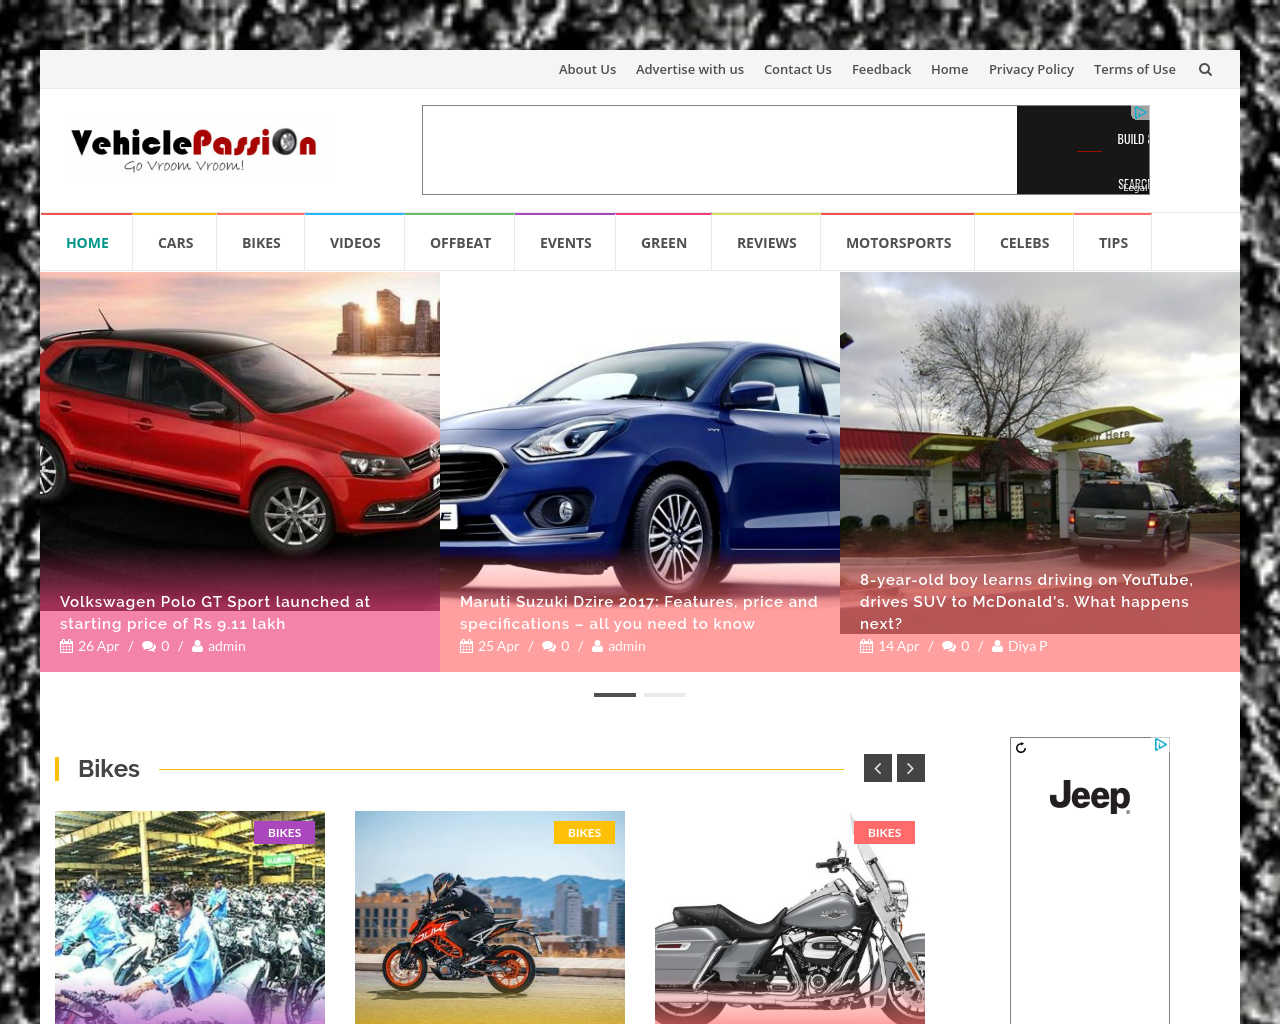 Vehicle-Passion-Advertising-Reviews-Pricing